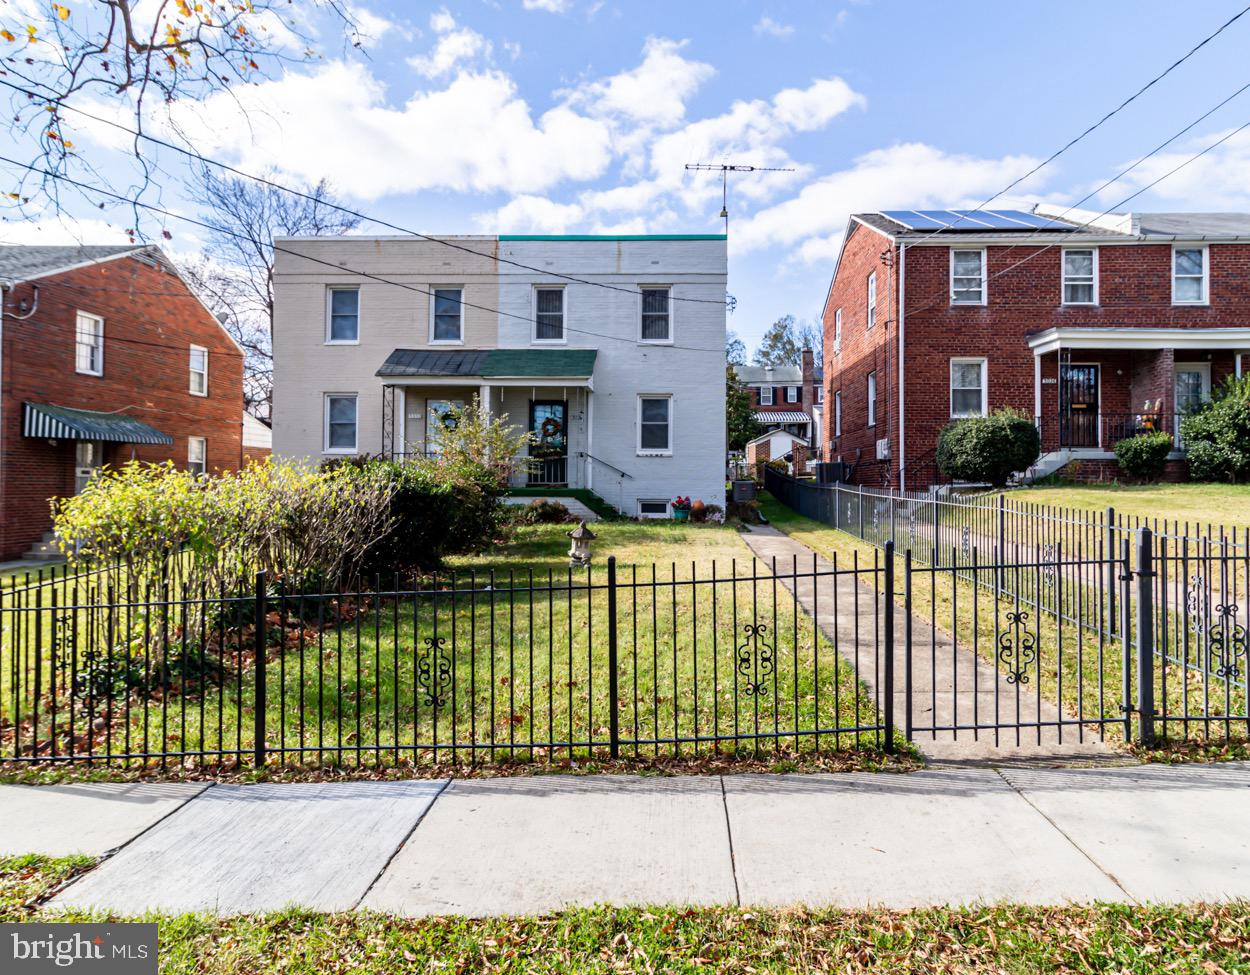 Fantastic opportunity to purchase in sought after Riggs Park neighborhood. This property has been we